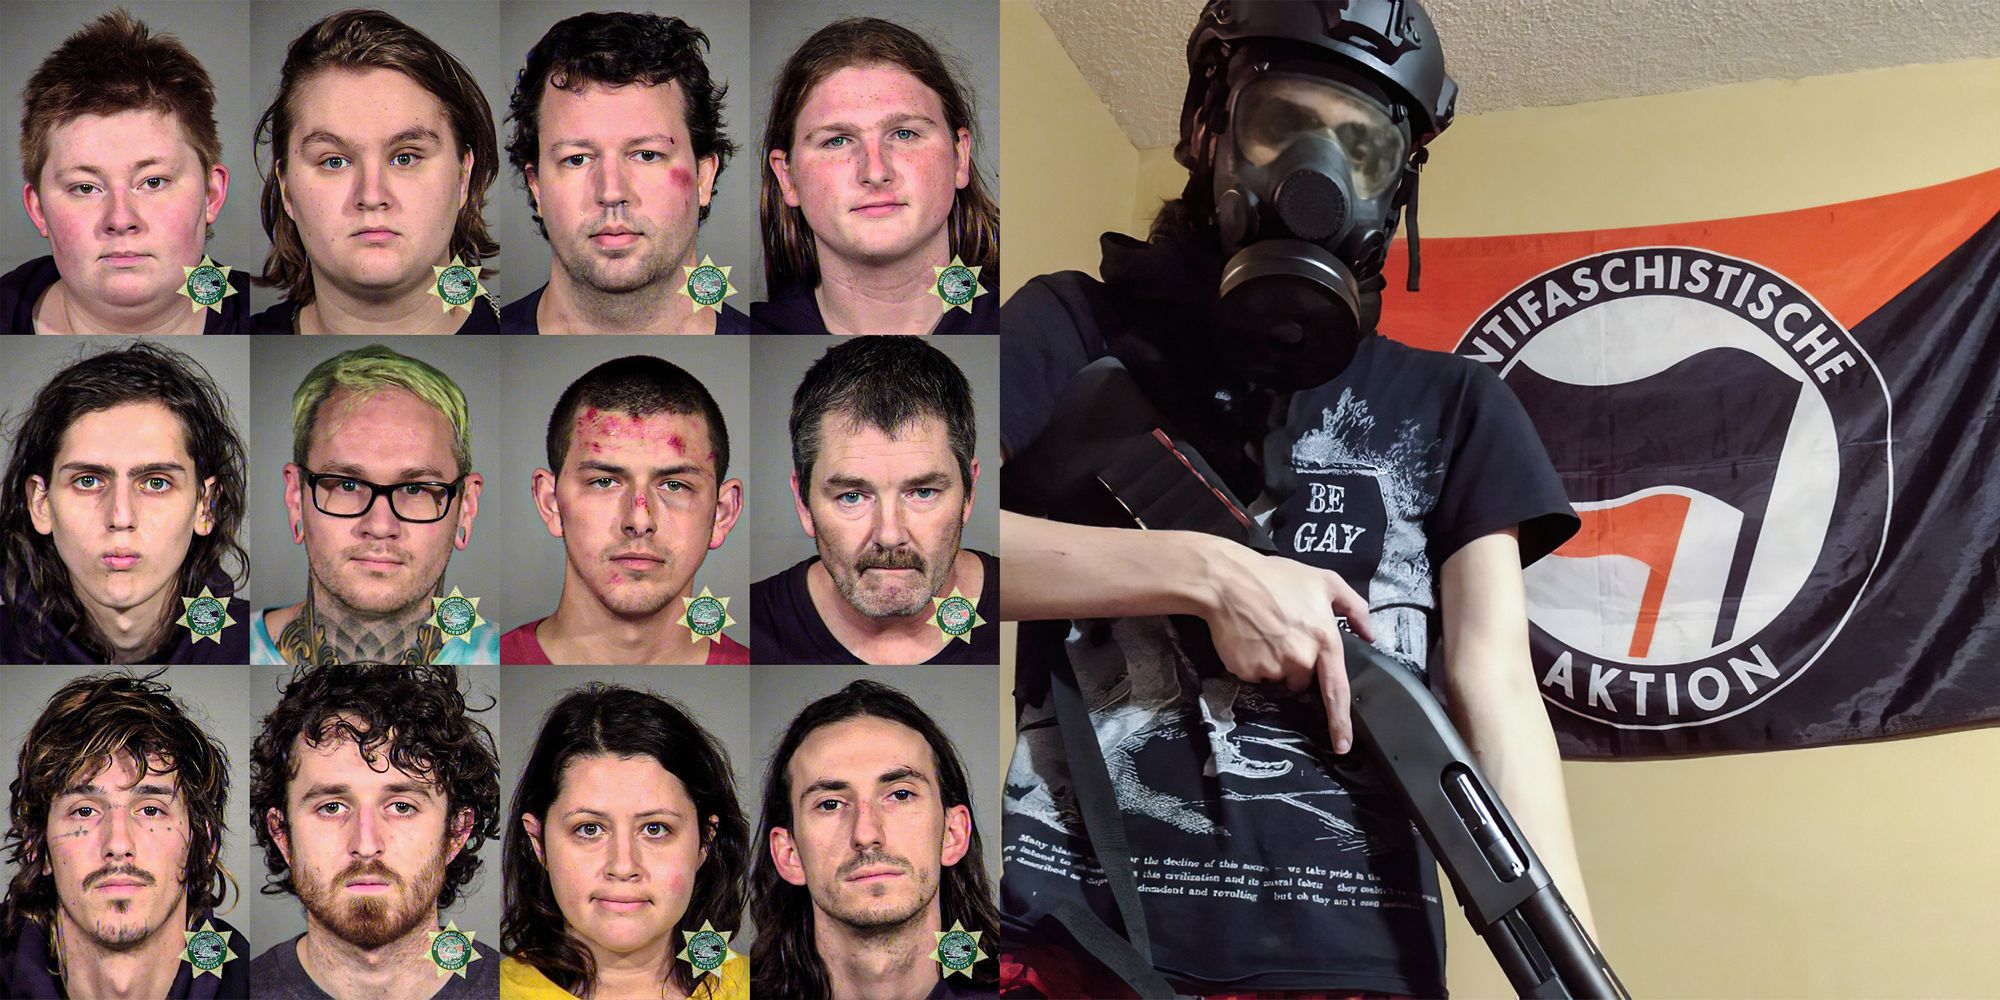 'Traveling protester' among those arrested at post-election Portland Antifa riot